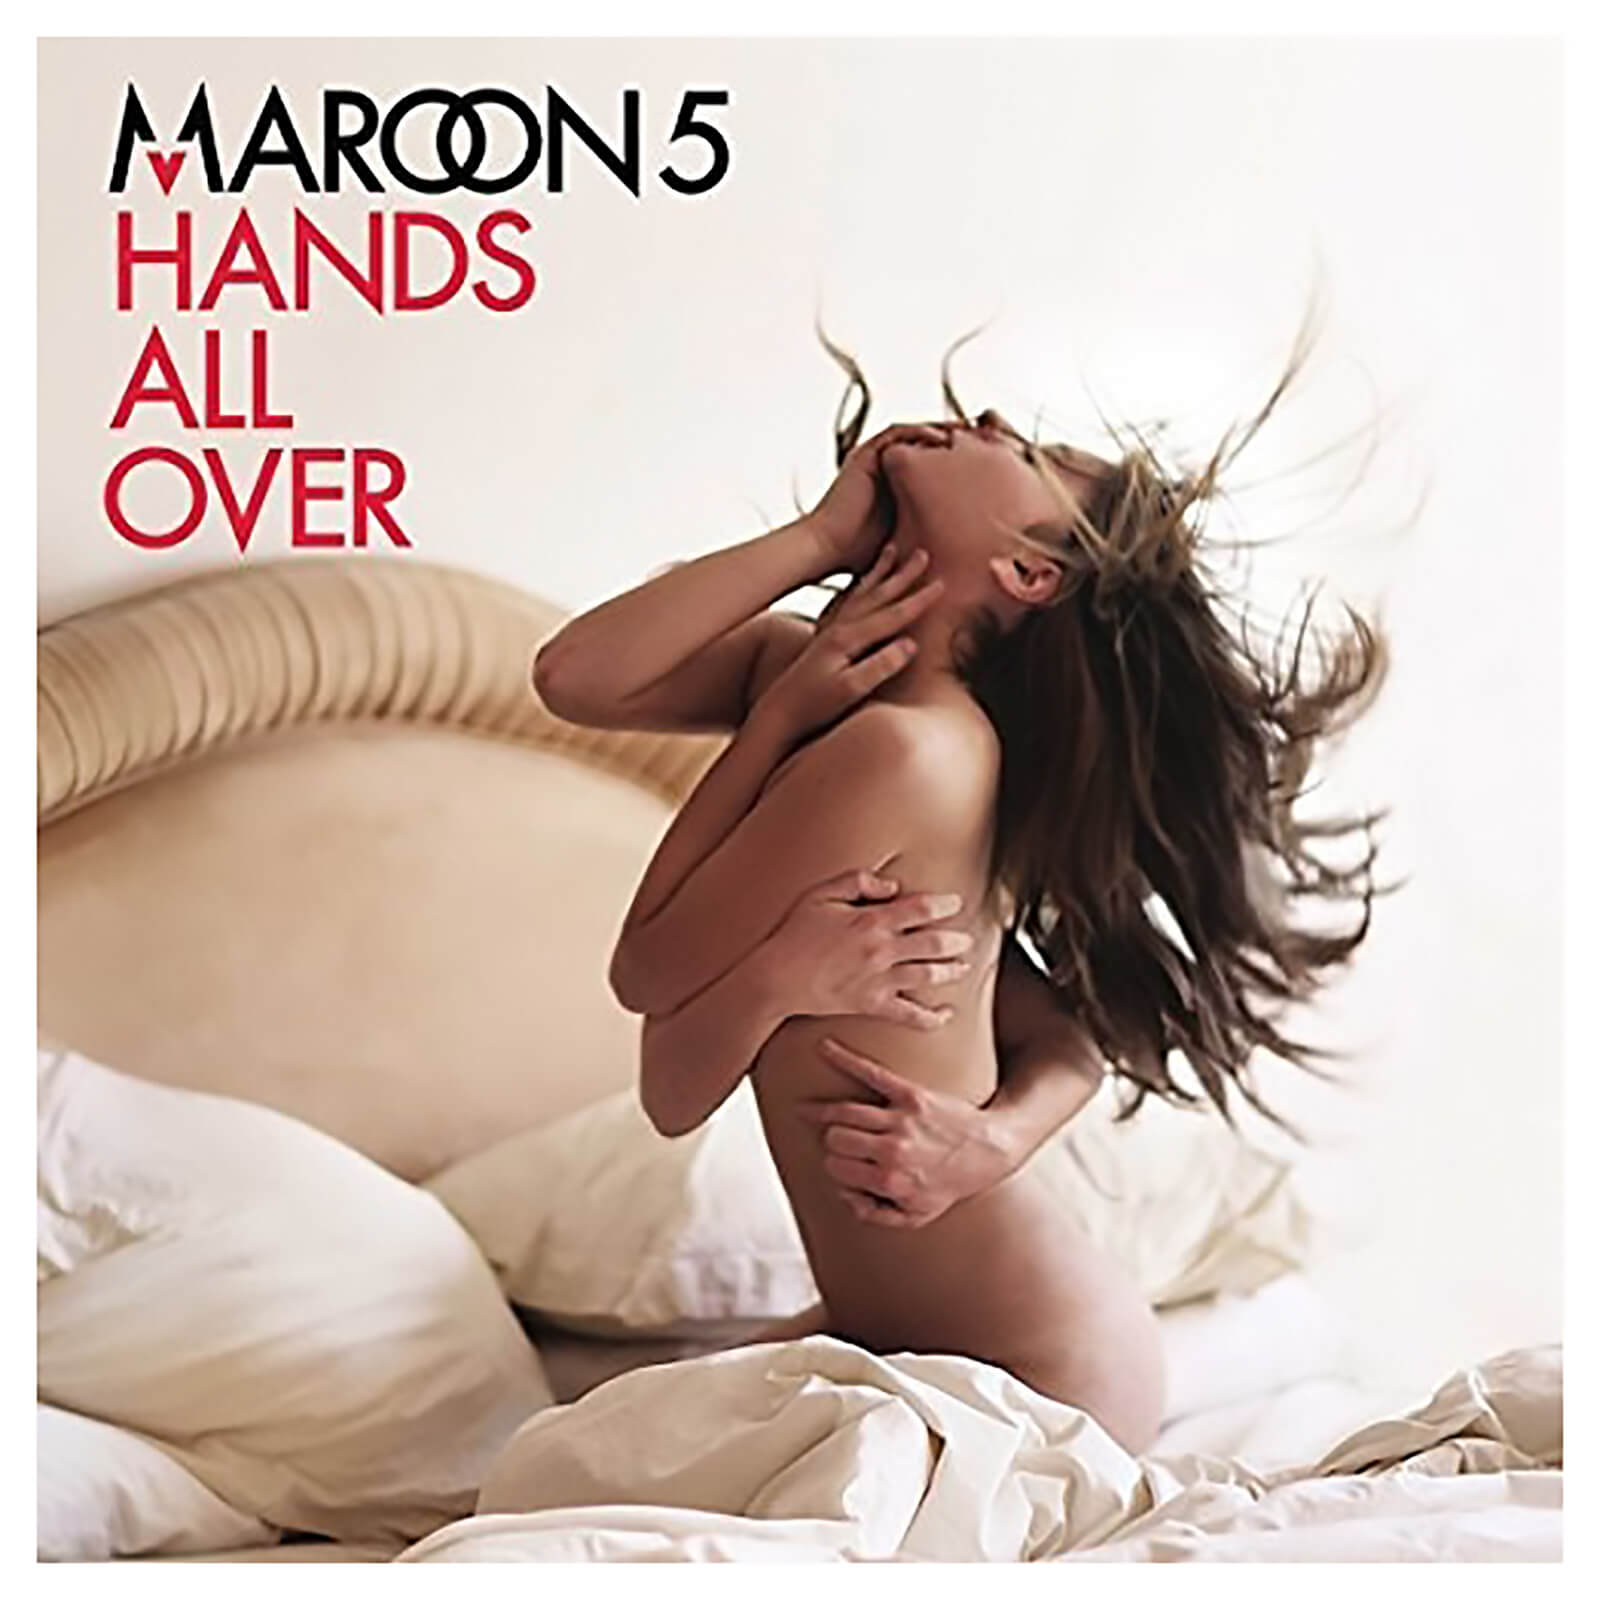 Maroon 5 - Hands All Over - Vinyl